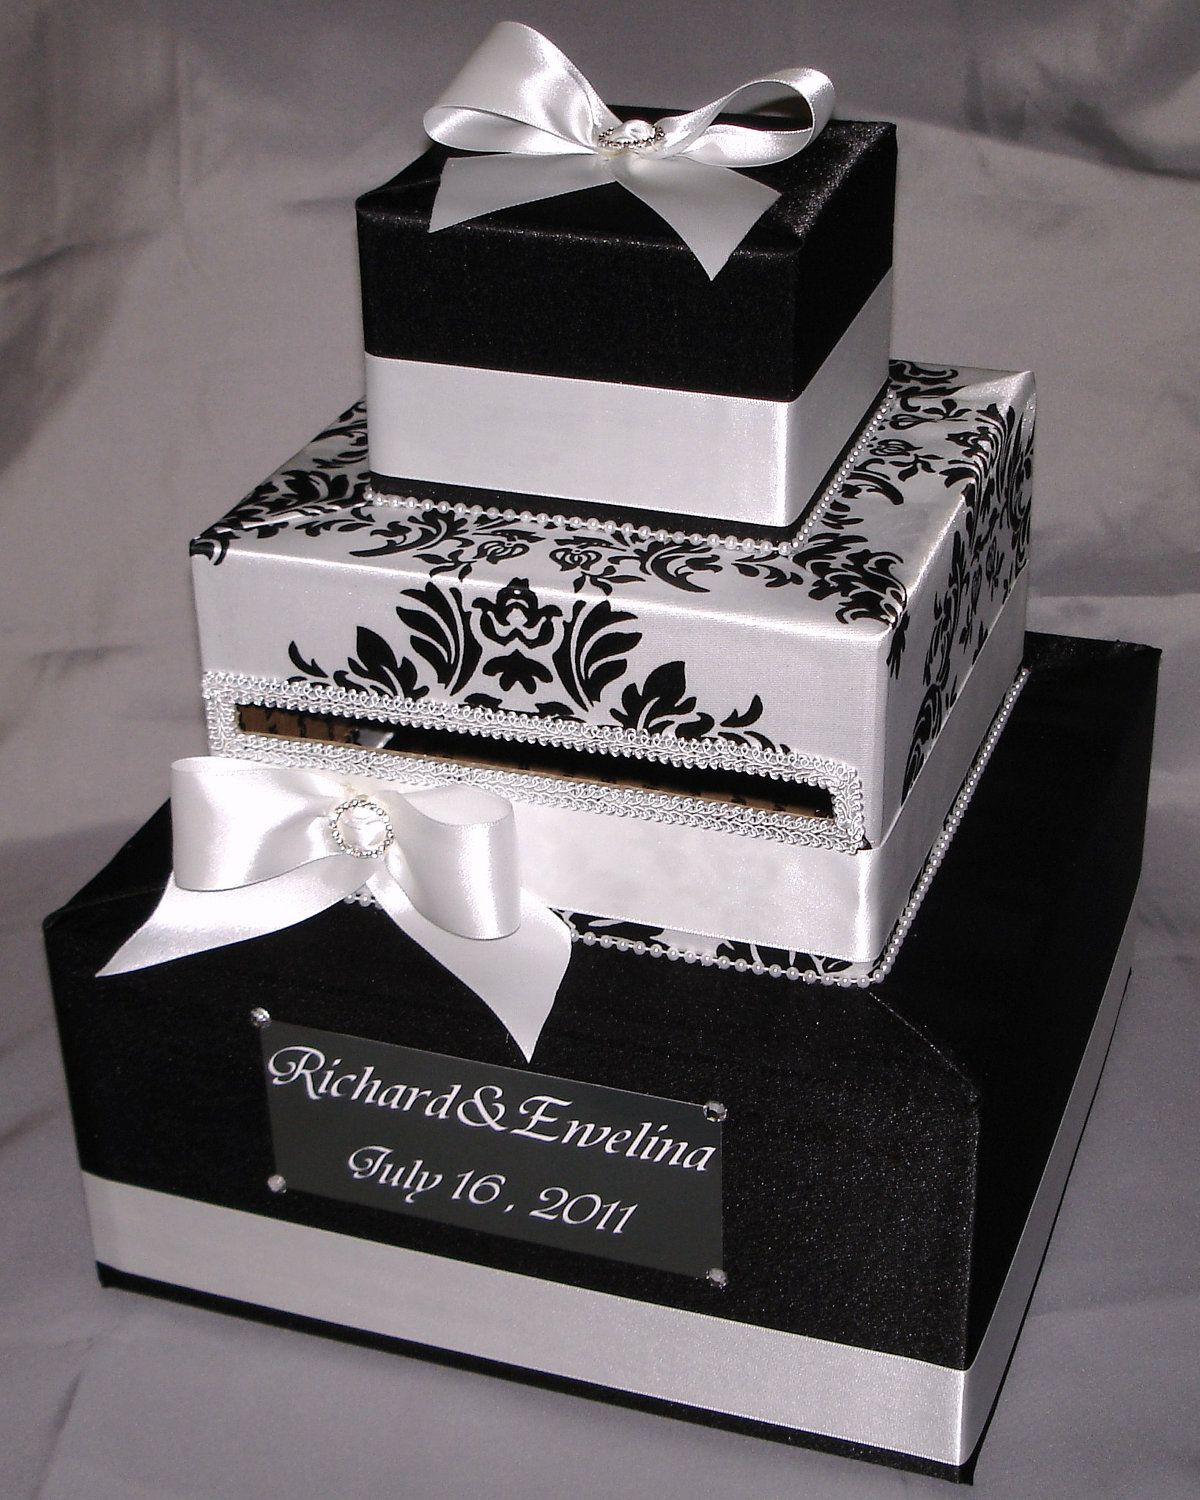 Gift Card Box For Wedding Reception: Pin By Lillian Meronoff On Lilly B Wedding